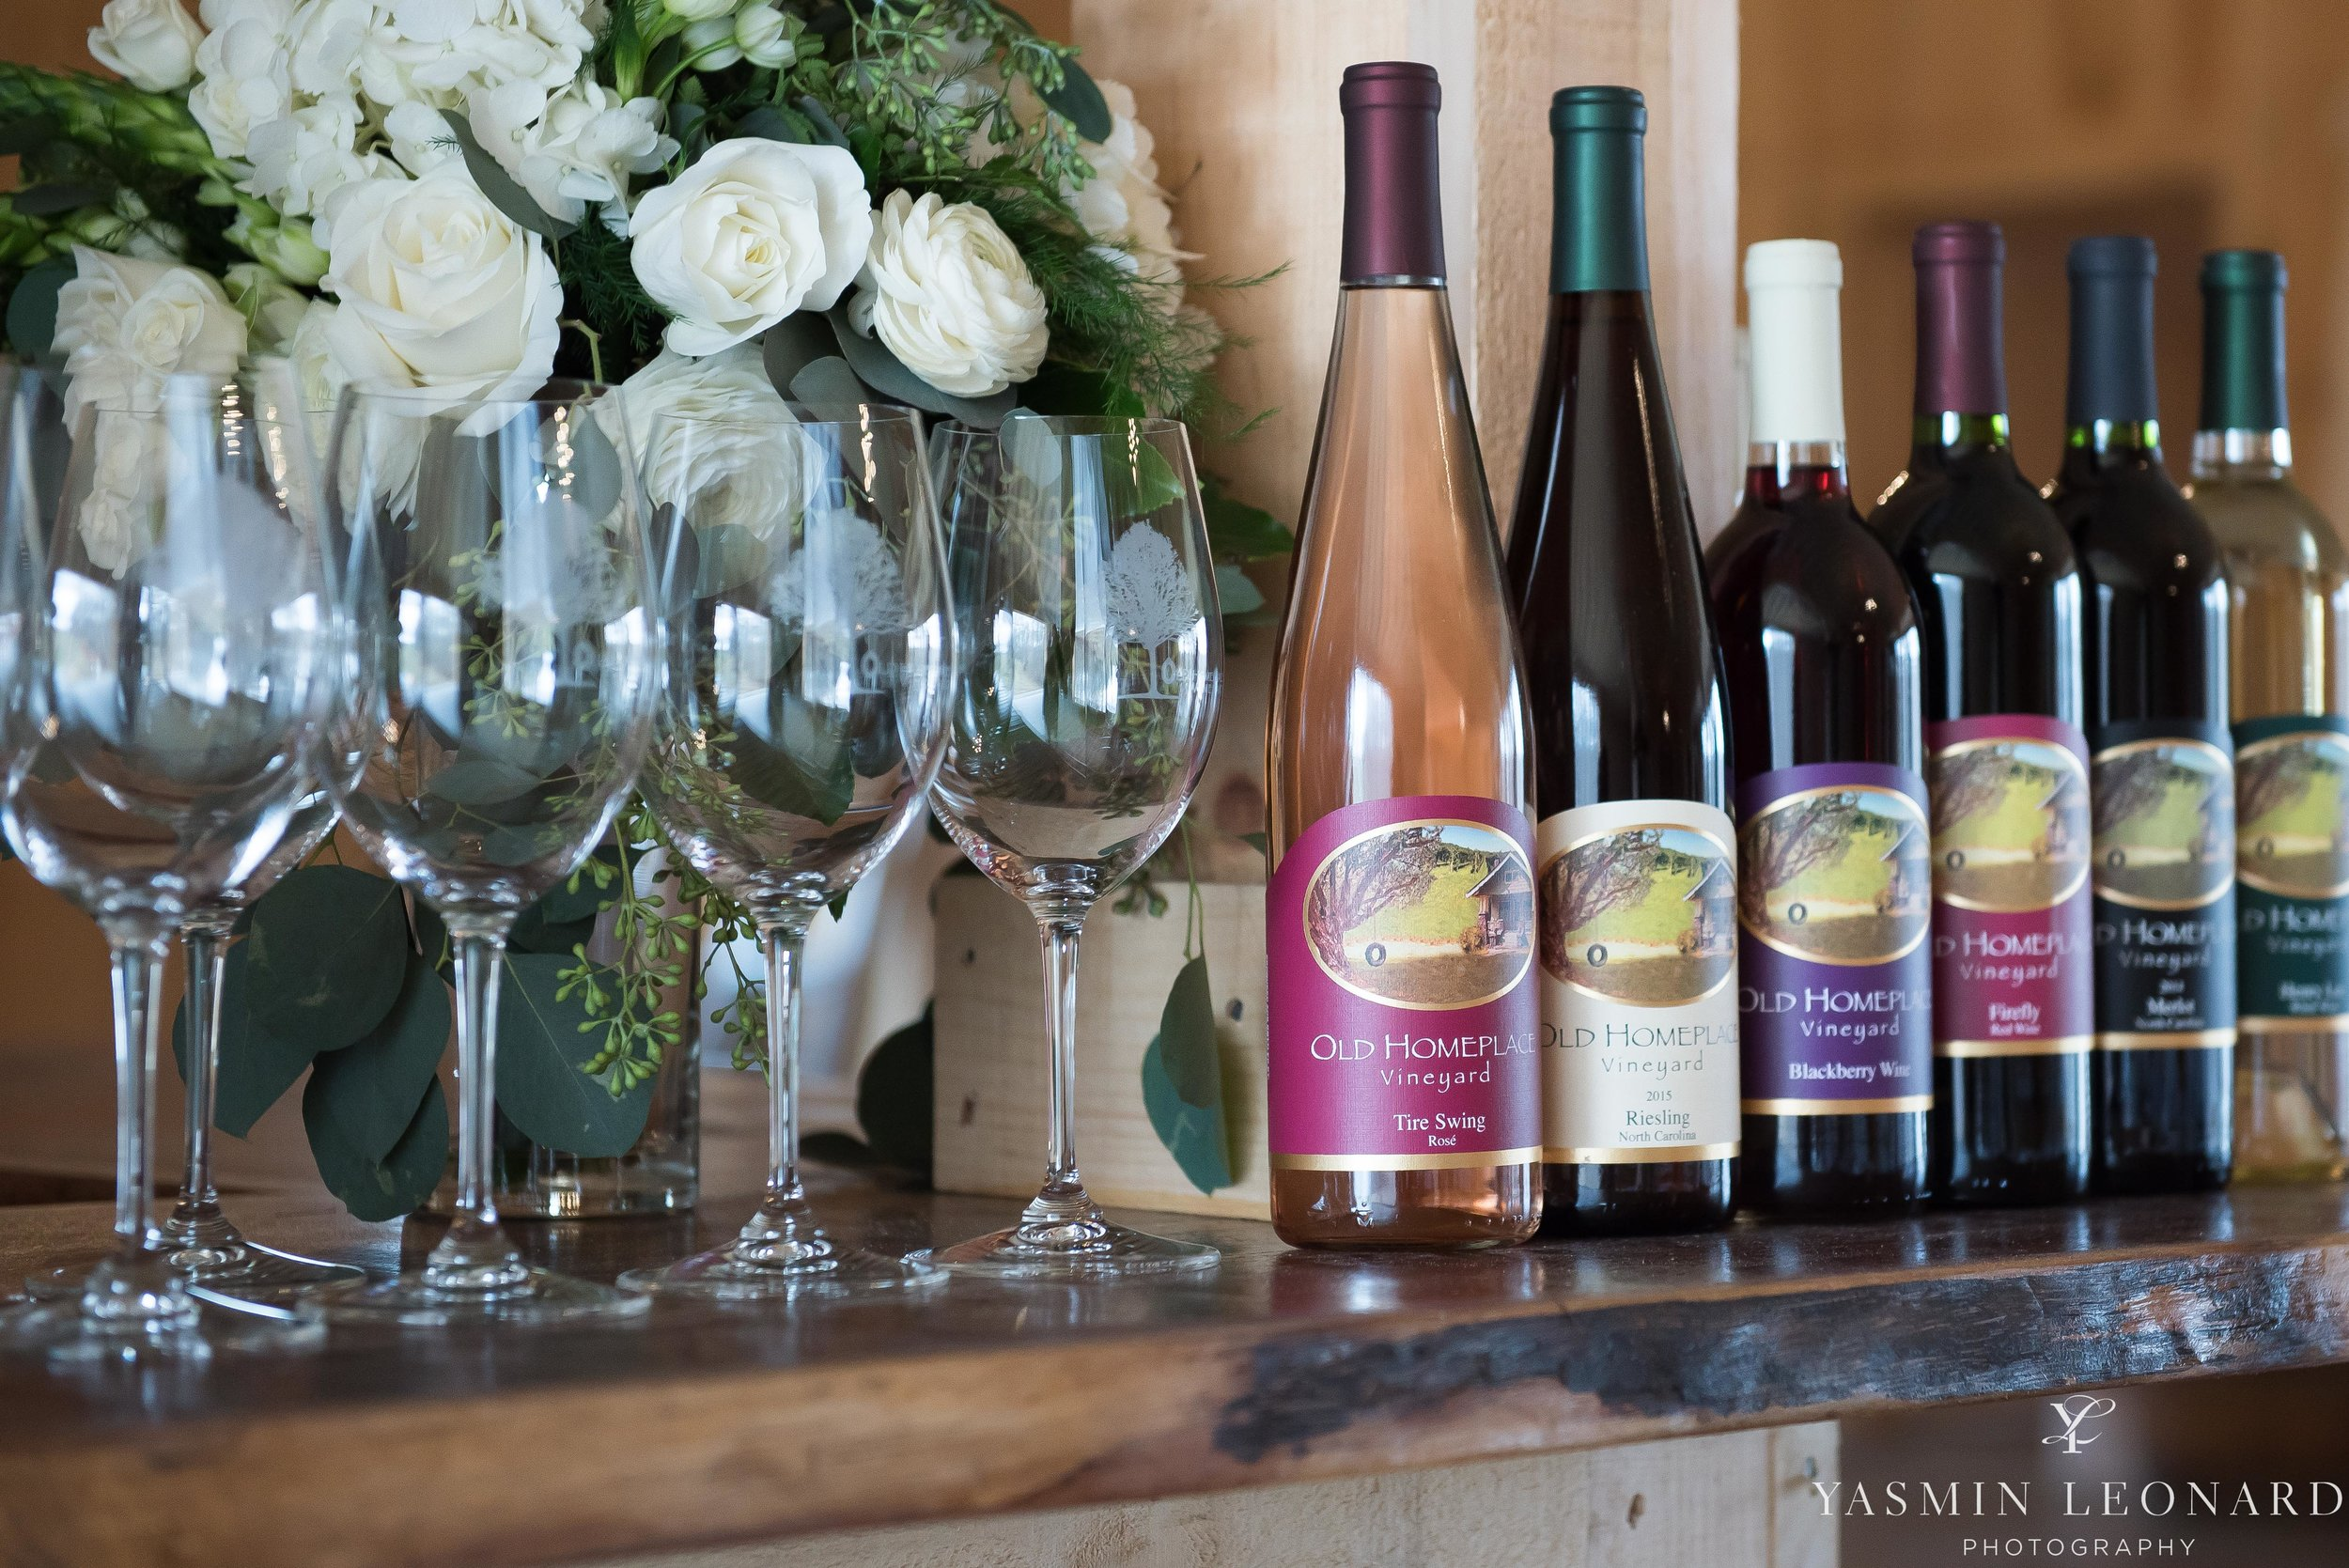 Old Homeplace Vineyard - Grits and Glitter - Dashing Dames Bridal Boutique - Just Priceless - Yasmin Leonard Photography - High Point Weddings - NC Weddings - NC Wedding Venues - High Point Jewelers - NC Wines - NC Vineyards - Cupcake Cuties-22.jpg